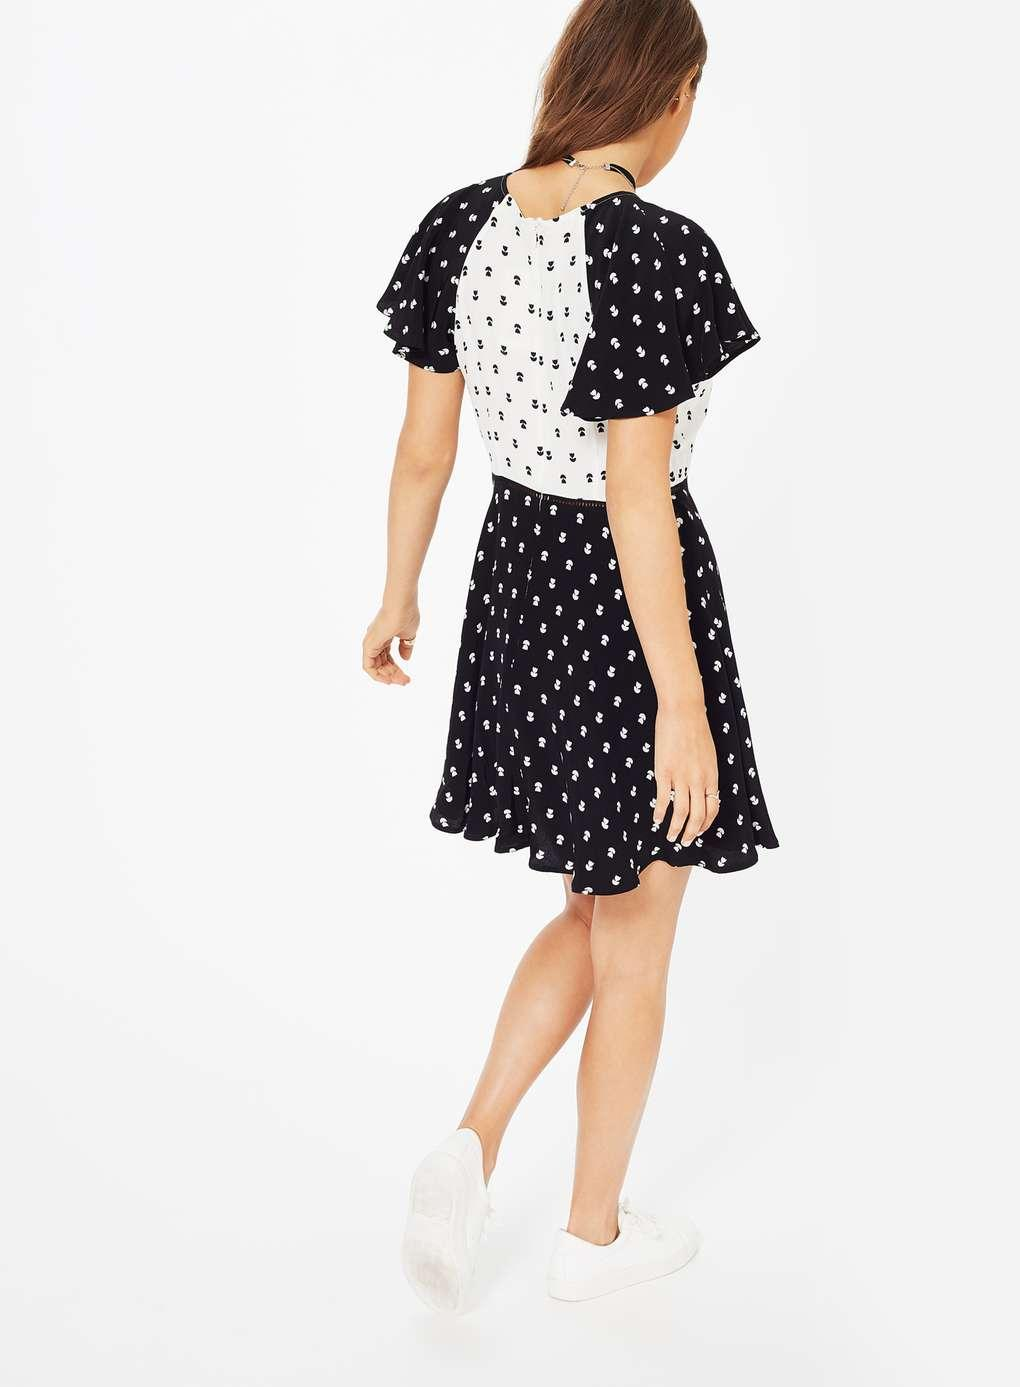 Miss selfridge black and white casual dress